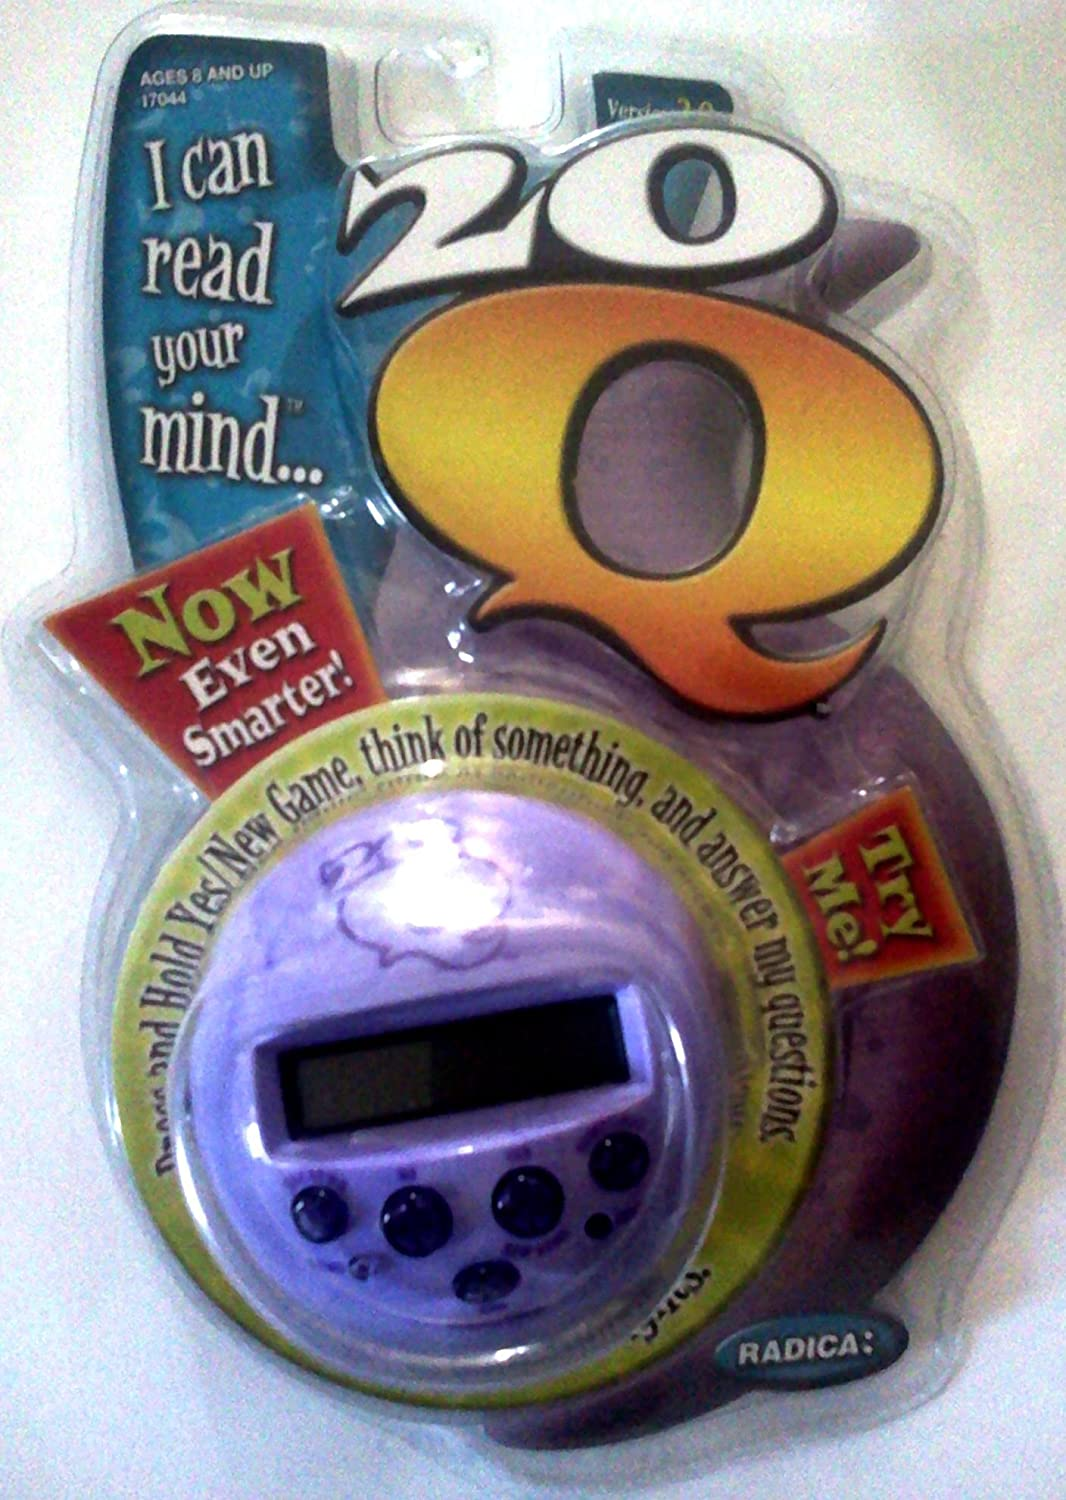 20Q Version 2.0 Mind Reading Game Handheld Electronic Mattel Marble Swirl version (Colors May Vary)